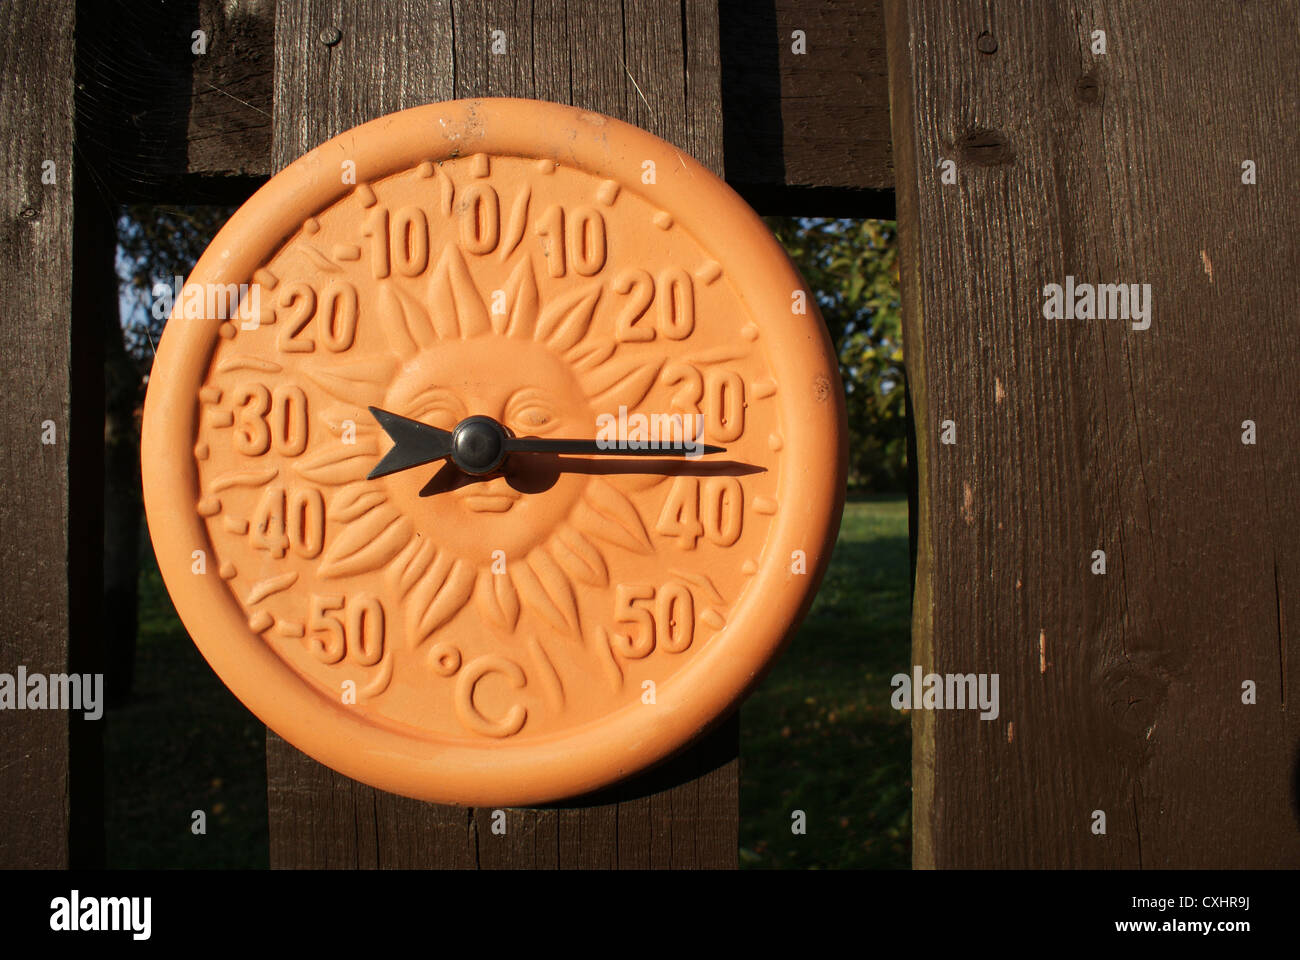 Charming Outdoor Terracotta Thermometer